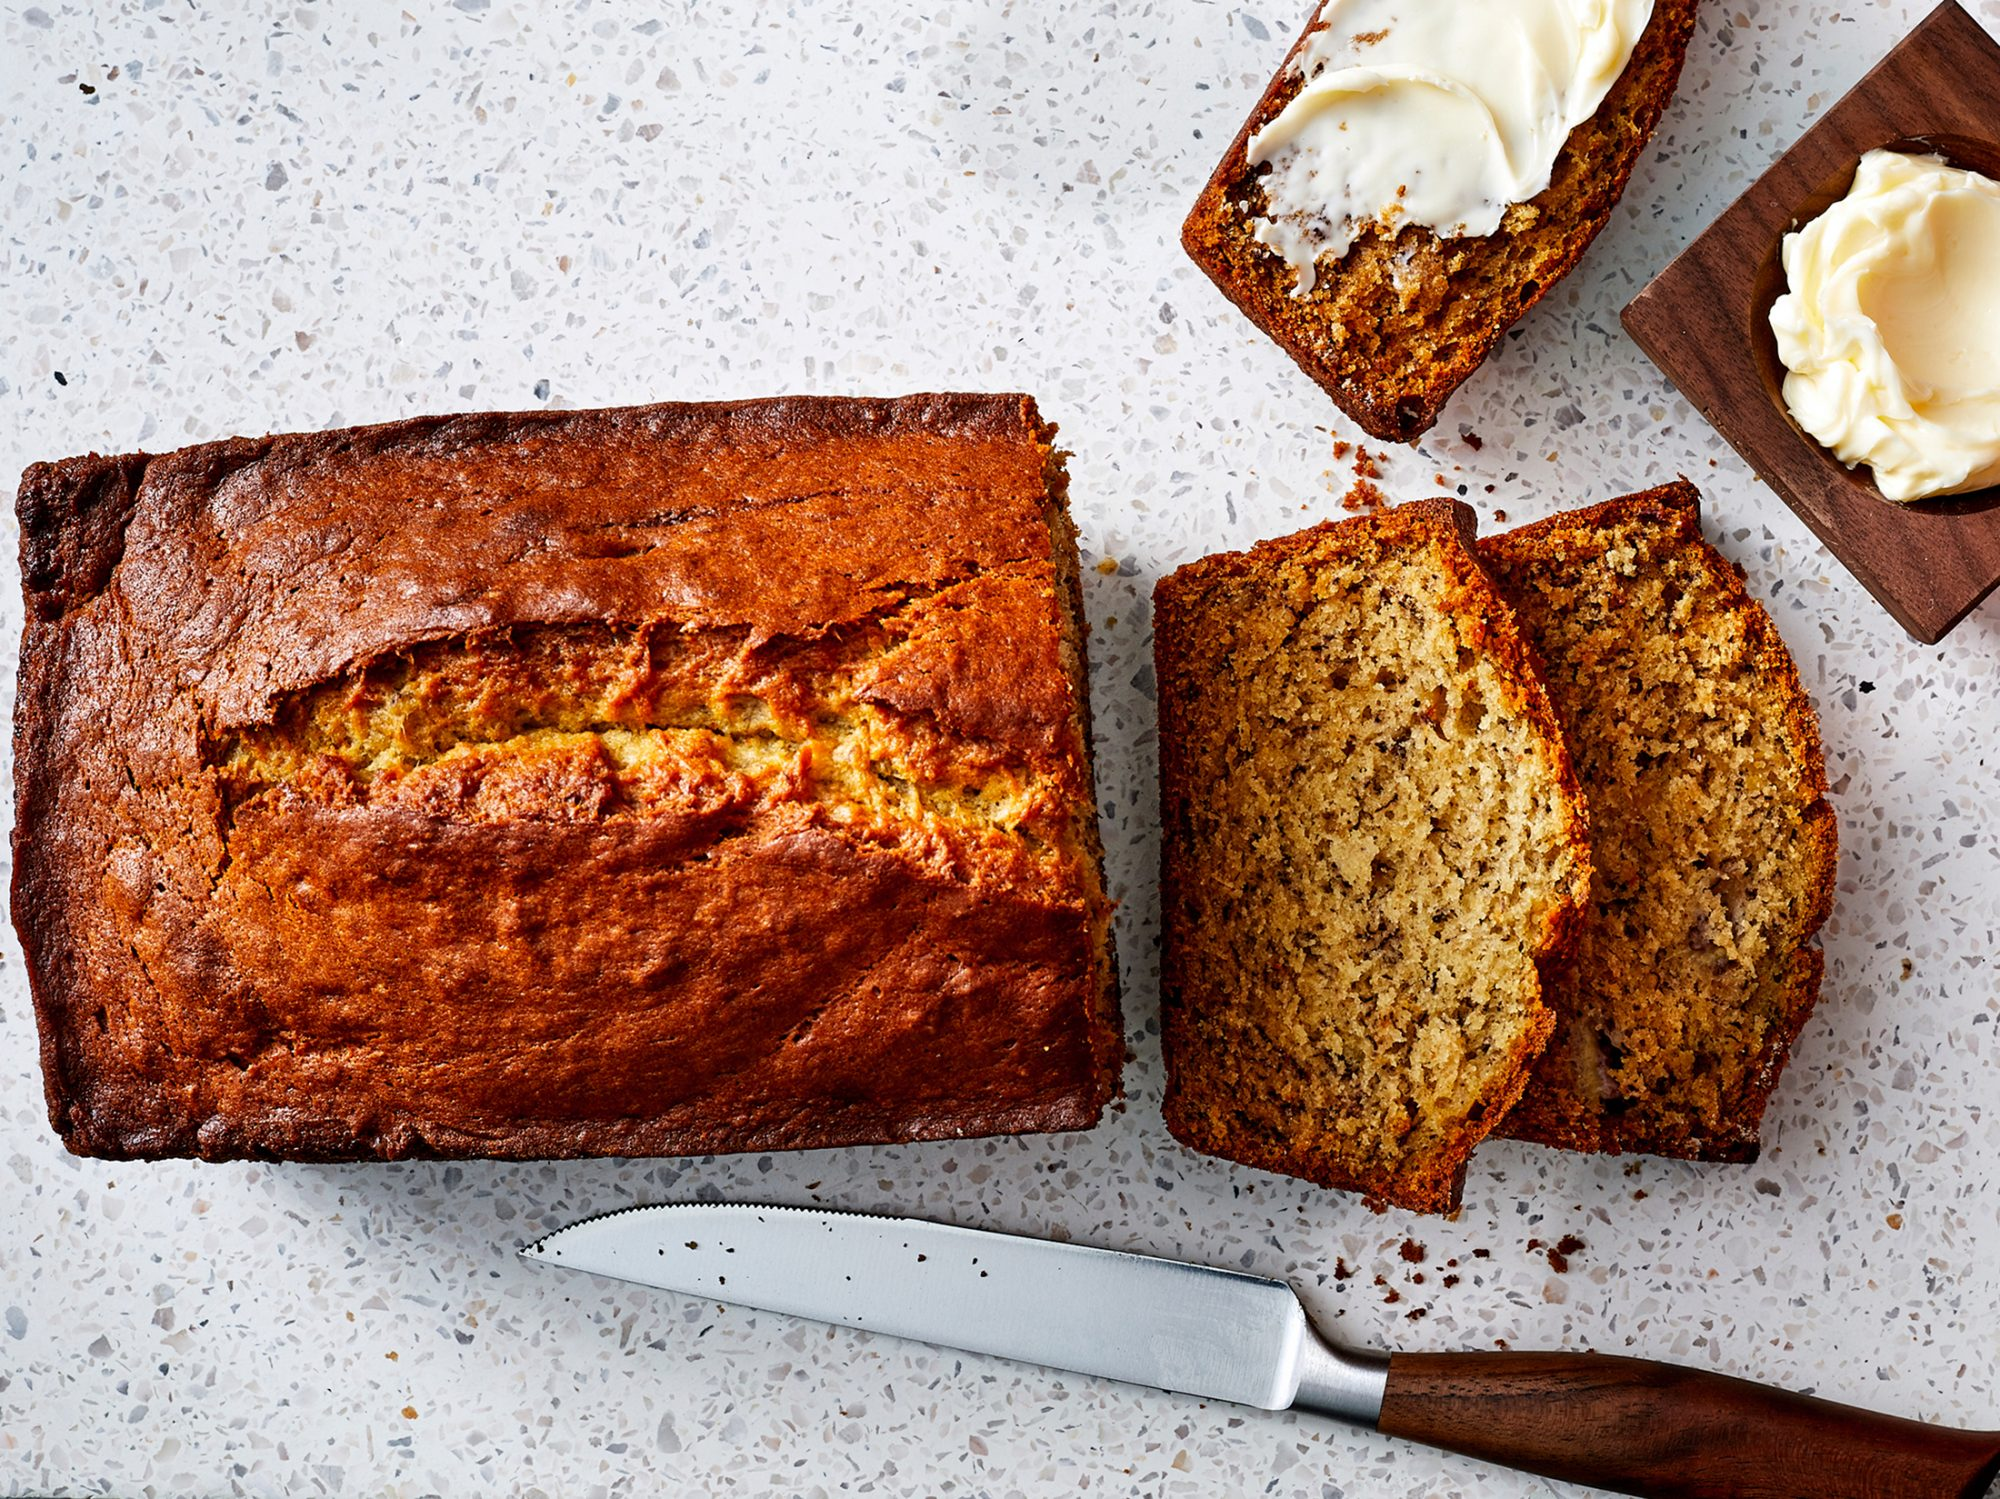 How to Make Banana Bread When Your Bananas Aren't Ripe Enough